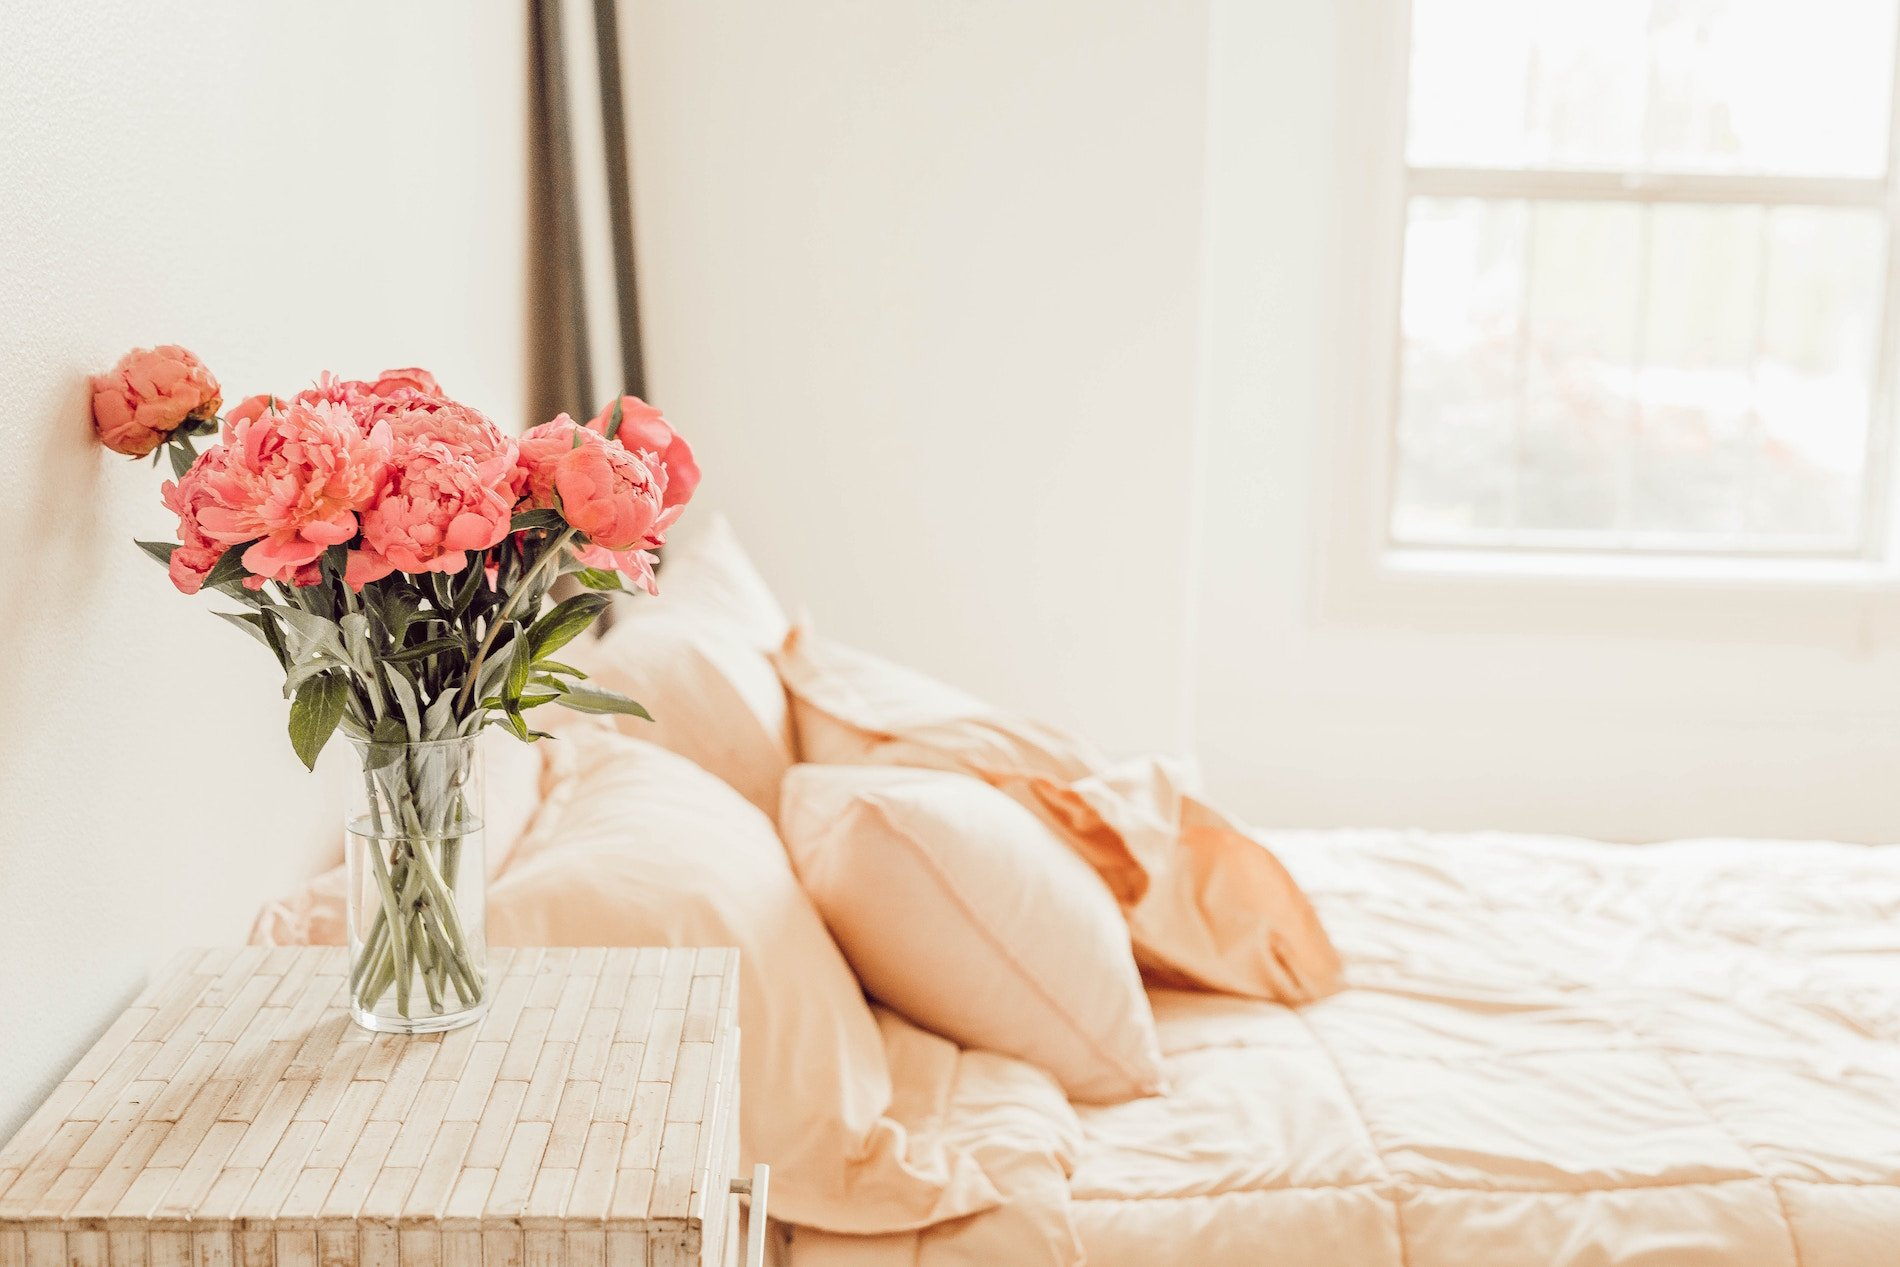 Fresh flowers, clean linens, natural light in guest room